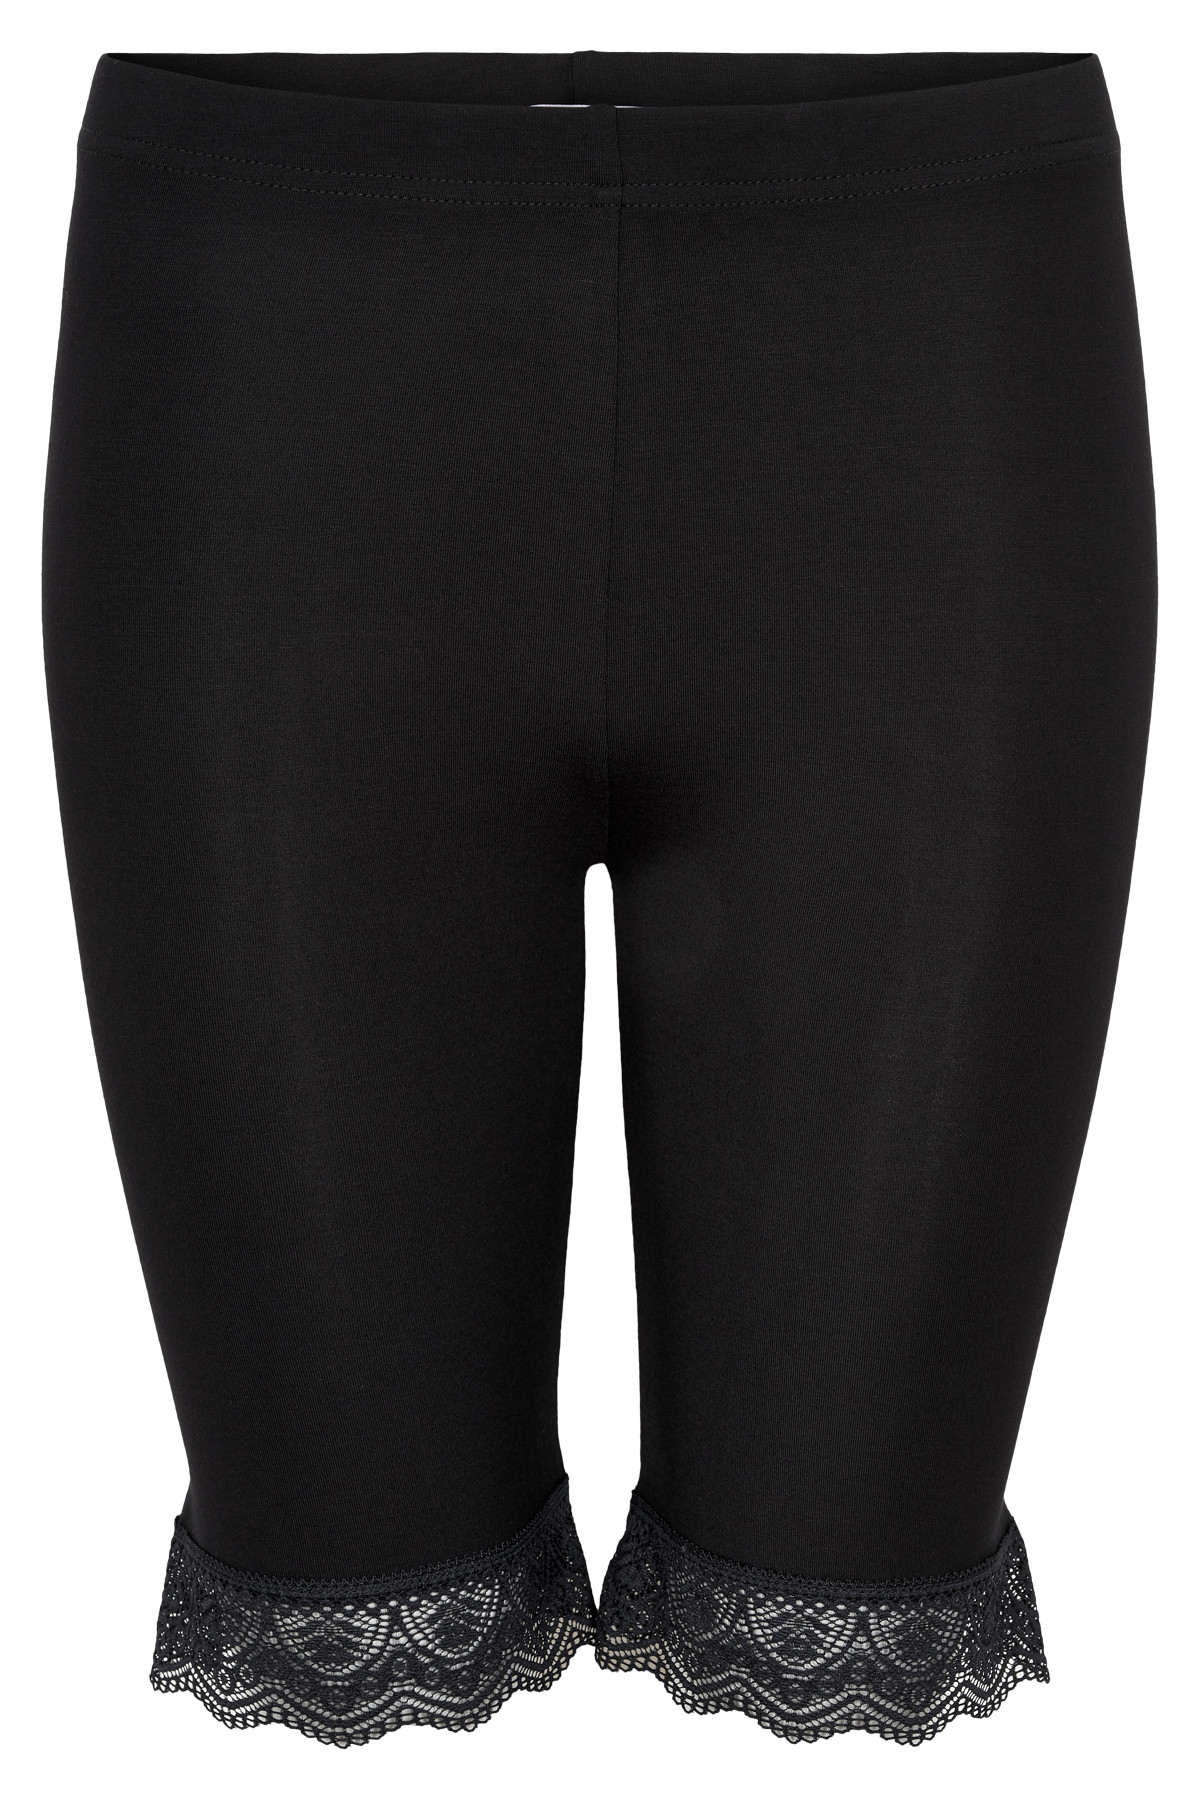 NOA NOA SHORT LEGGINGS 1-9845-2 00000 (Black, XL)